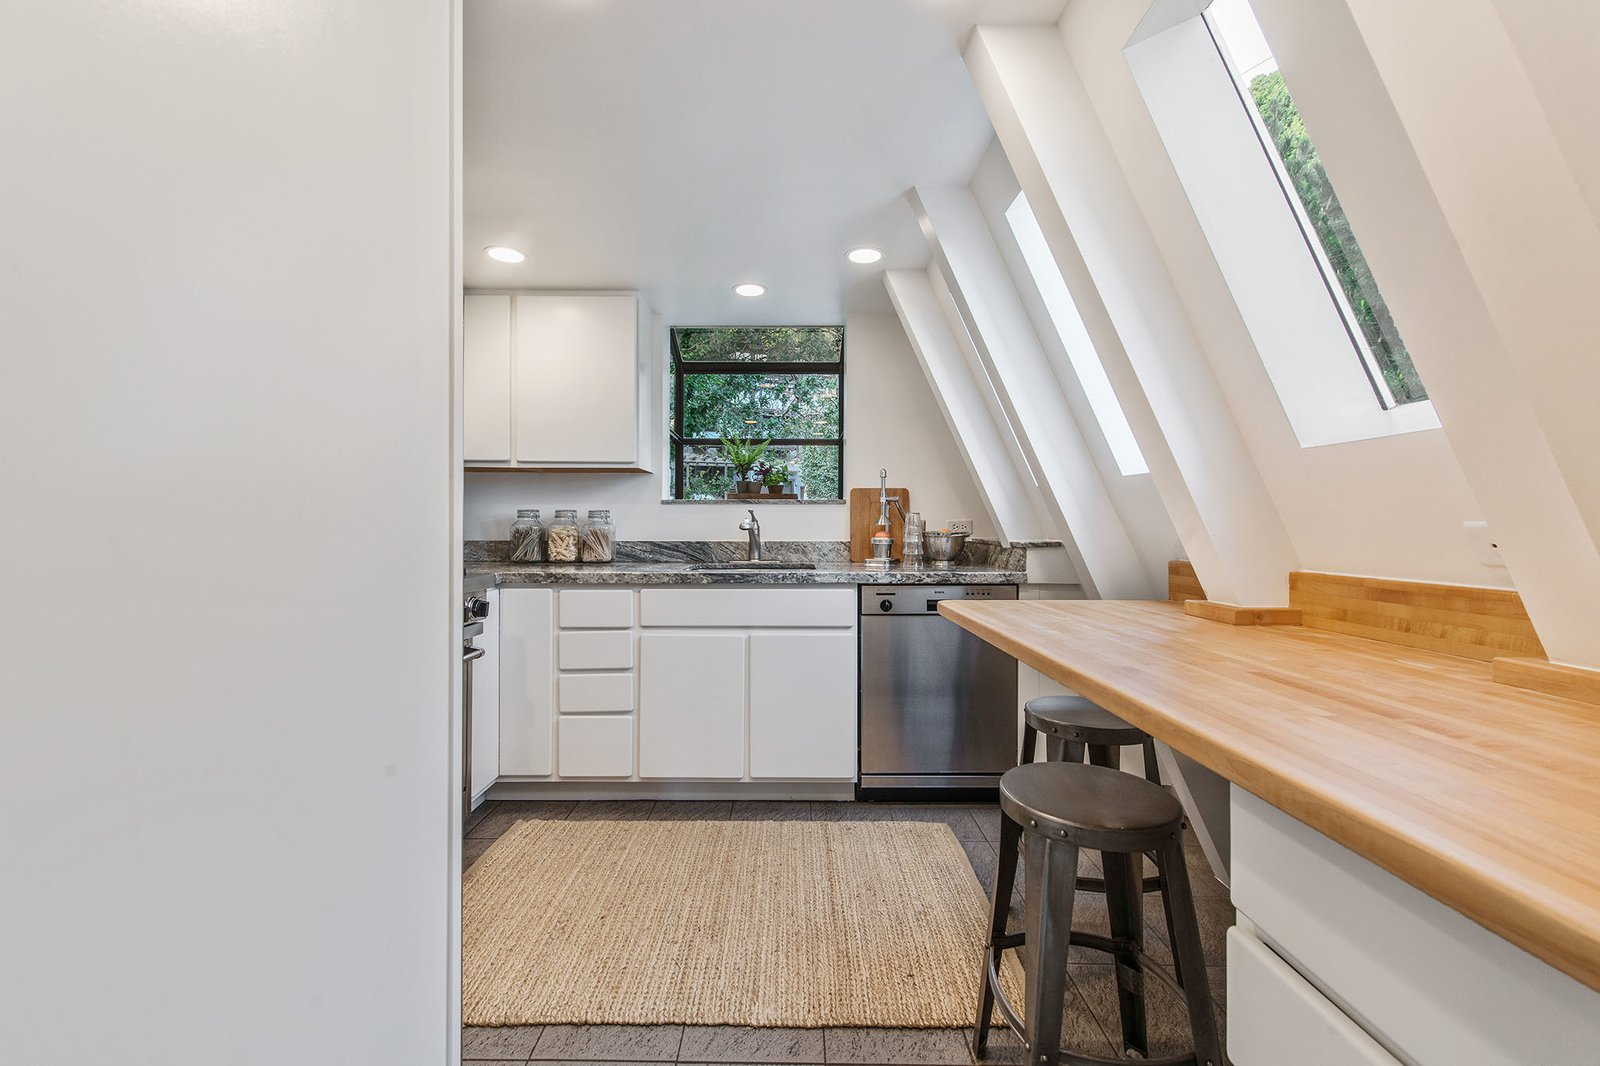 Kitchen, White Cabinet, Refrigerator, Dishwasher, Ceiling Lighting, Range, Wall Oven, Recessed Lighting, Drop In Sink, Range Hood, and Stone Counter  Best Photos from Exceptional A-Frame in Sausalito asks $1.399M